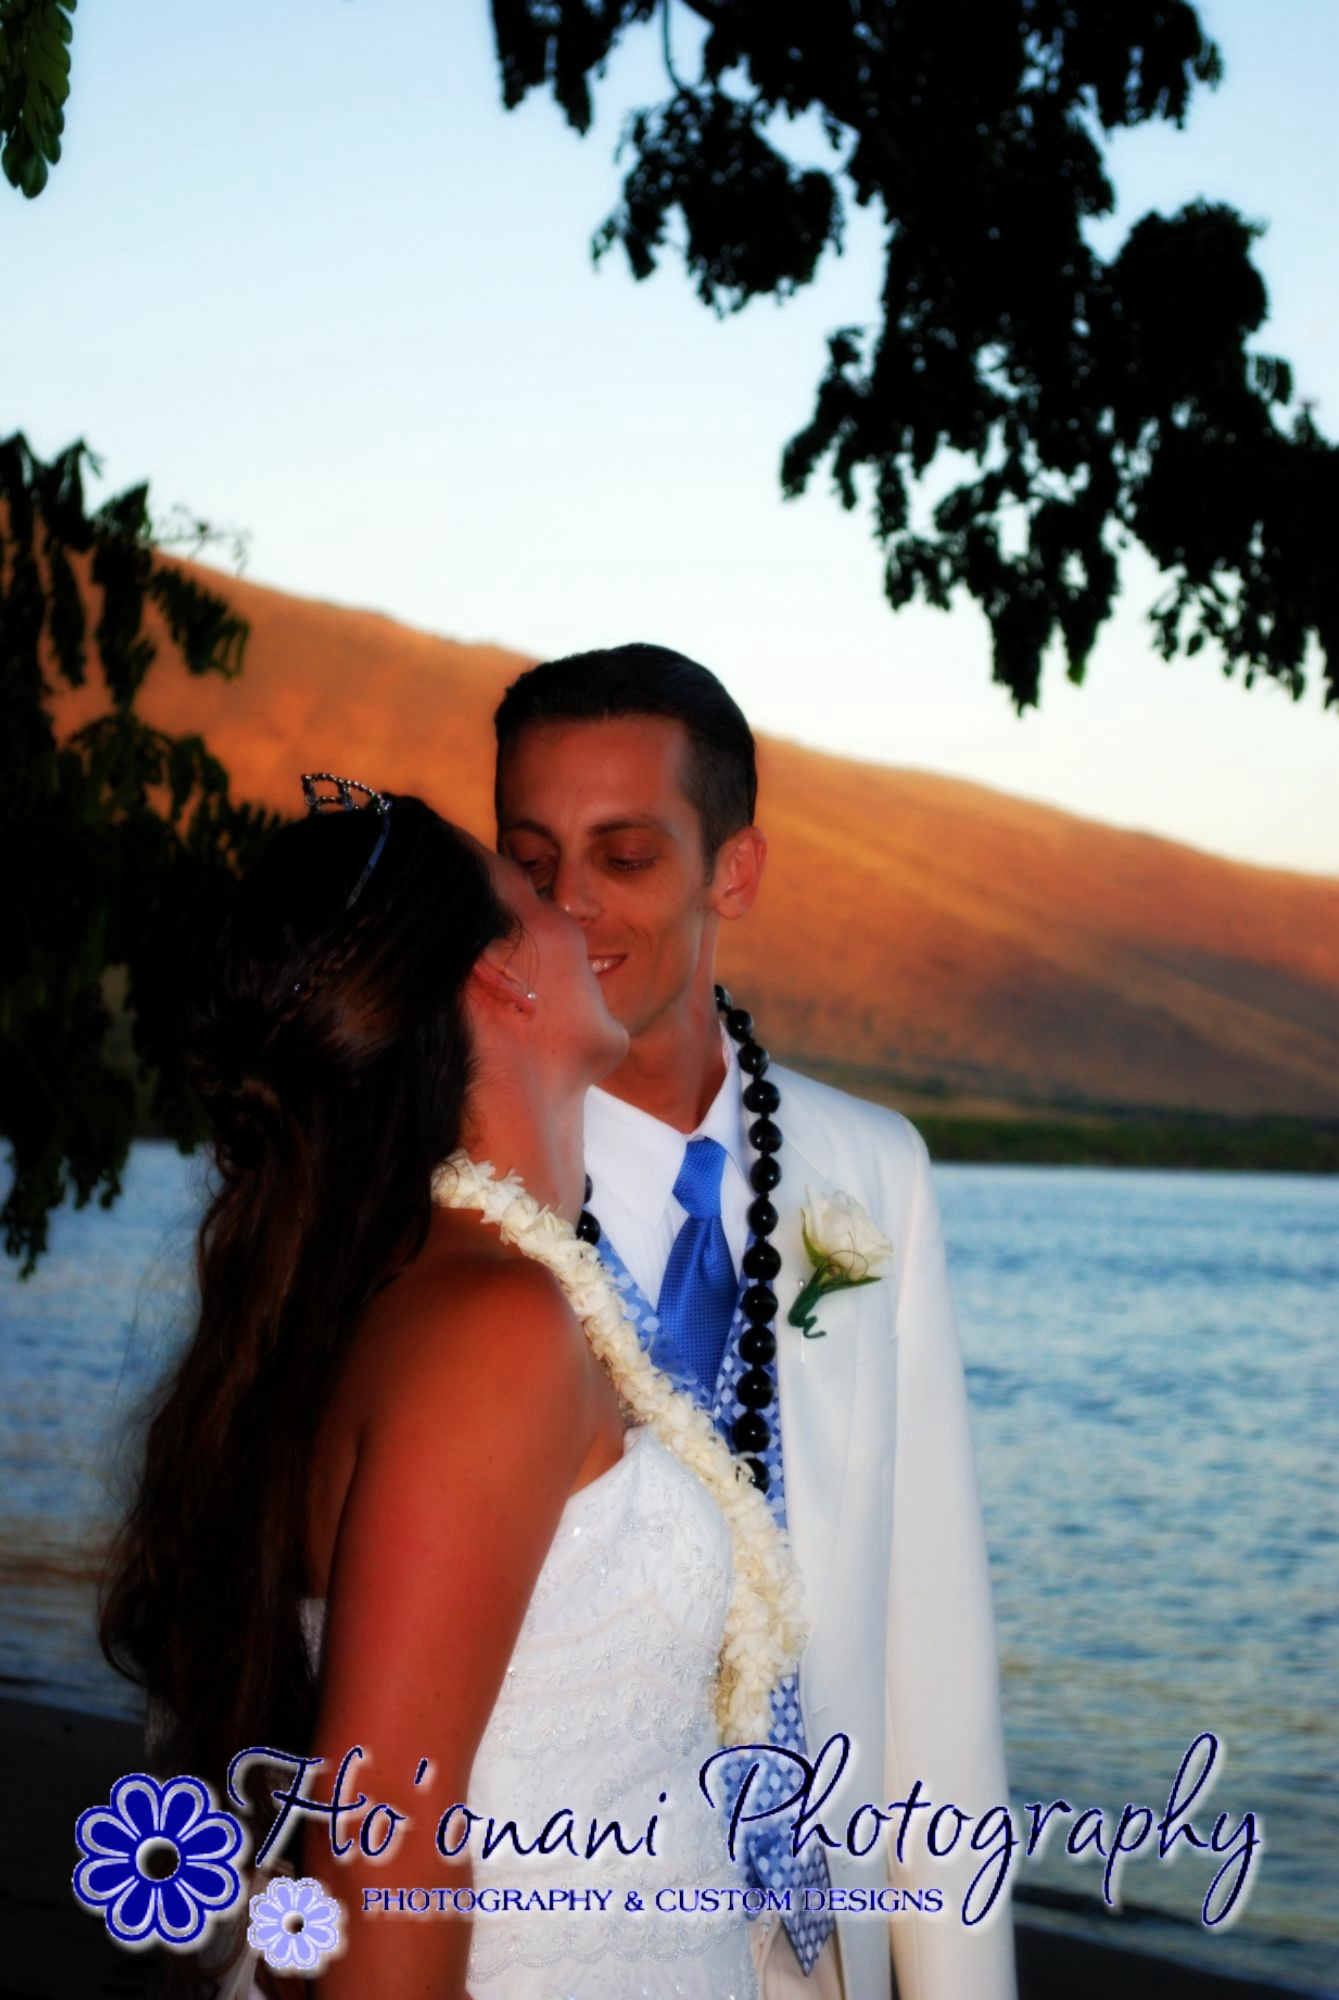 Ceremony, Reception, Flowers & Decor, Wedding Dresses, Fashion, orange, pink, red, blue, gold, dress, Wedding, Photos, Sunset, Lahaina, Hoonani photography, Olowalu